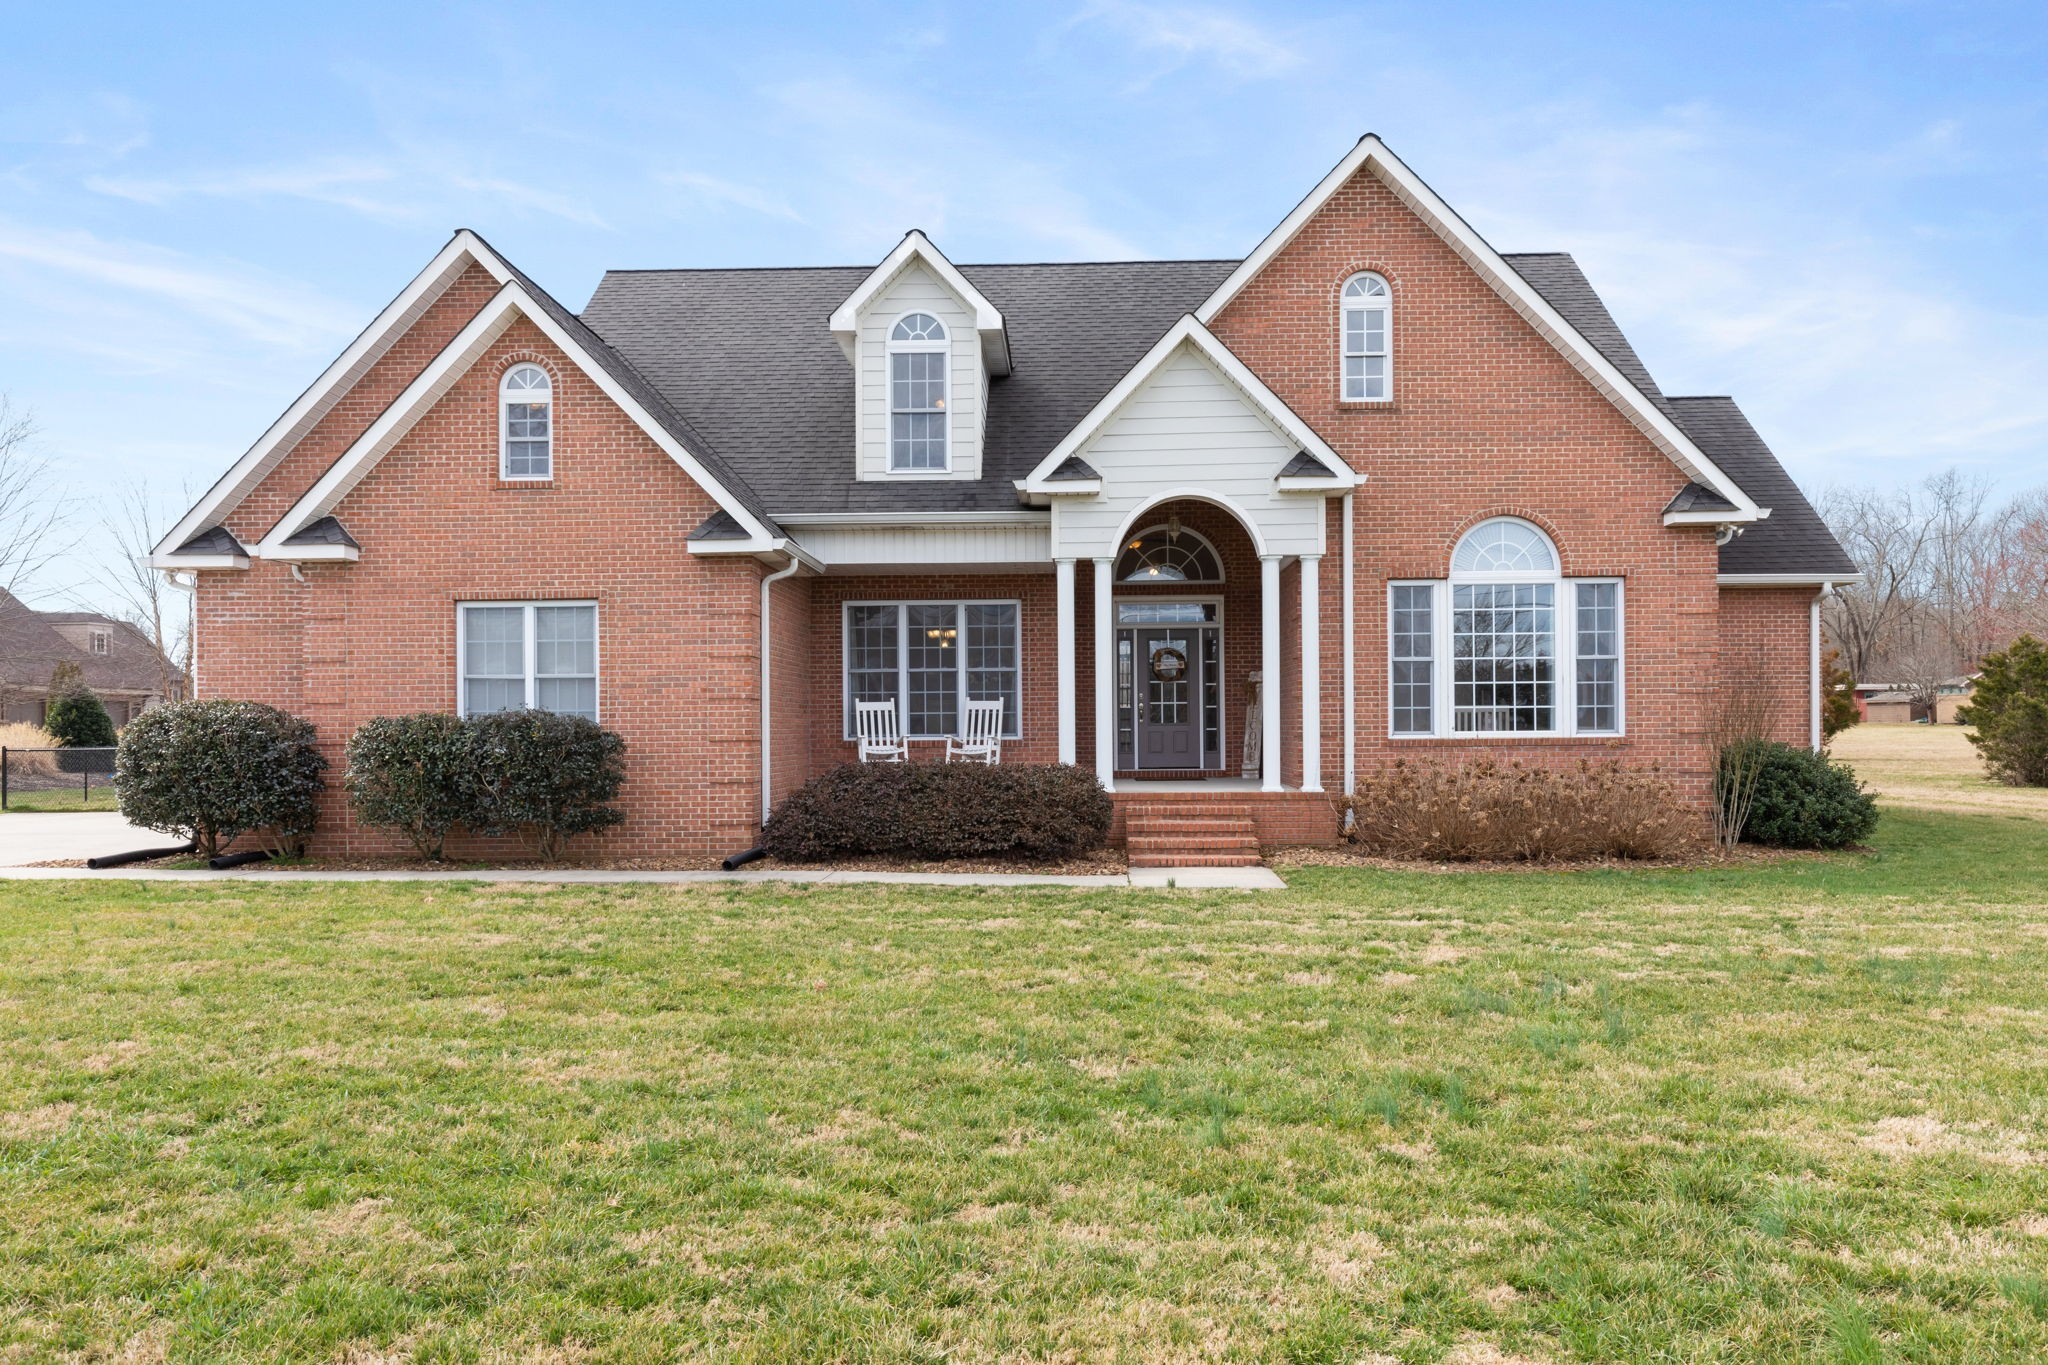 501 Old Shelbyville Hwy Property Photo - Tullahoma, TN real estate listing